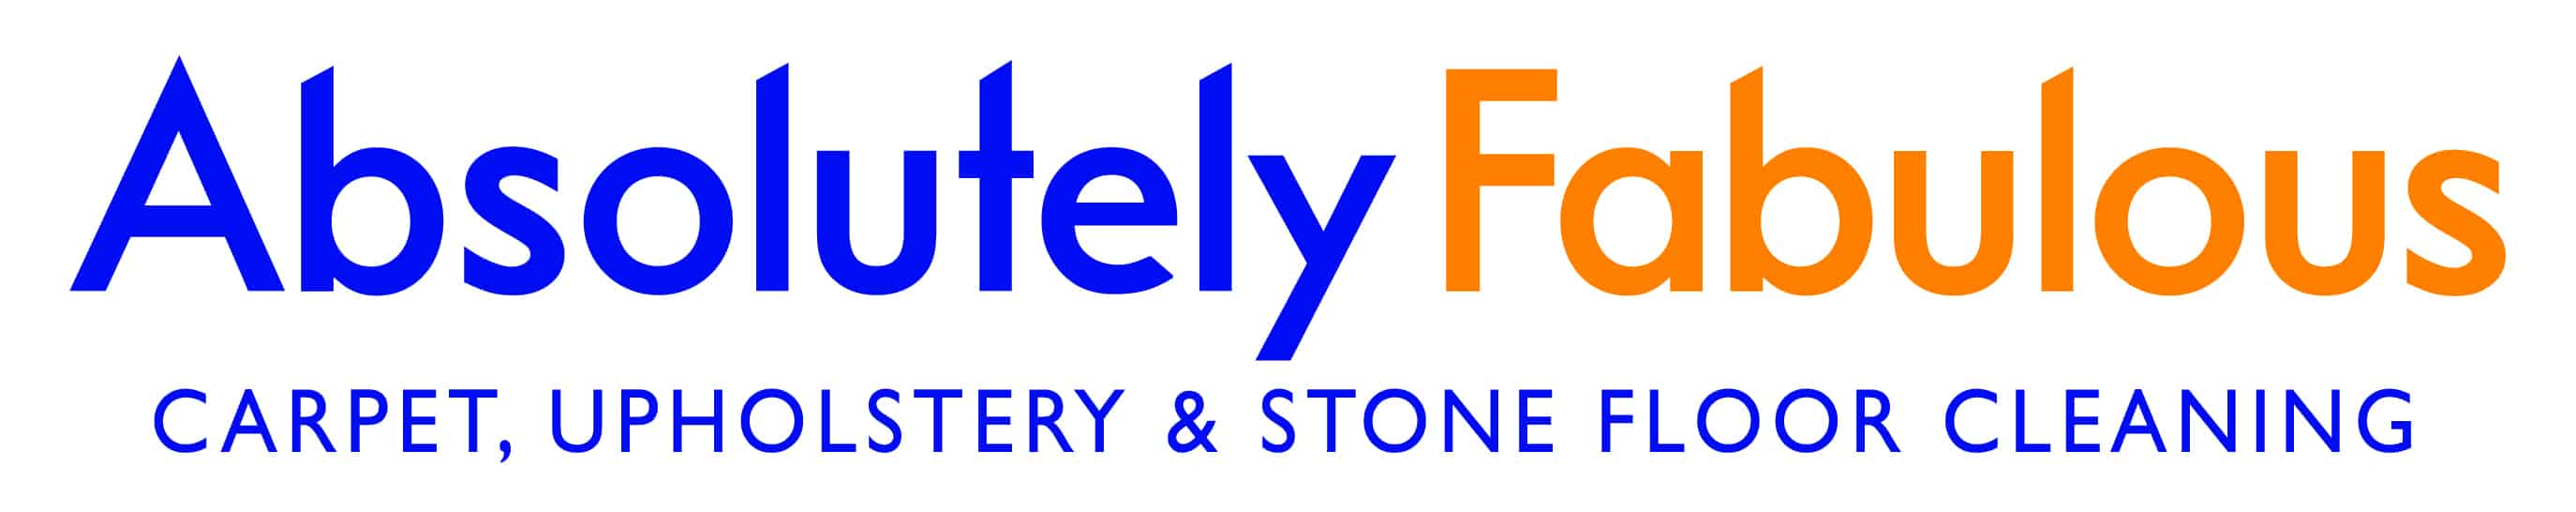 AbFab Carpet, Upholstery, Stone Floor & Rug Cleaning